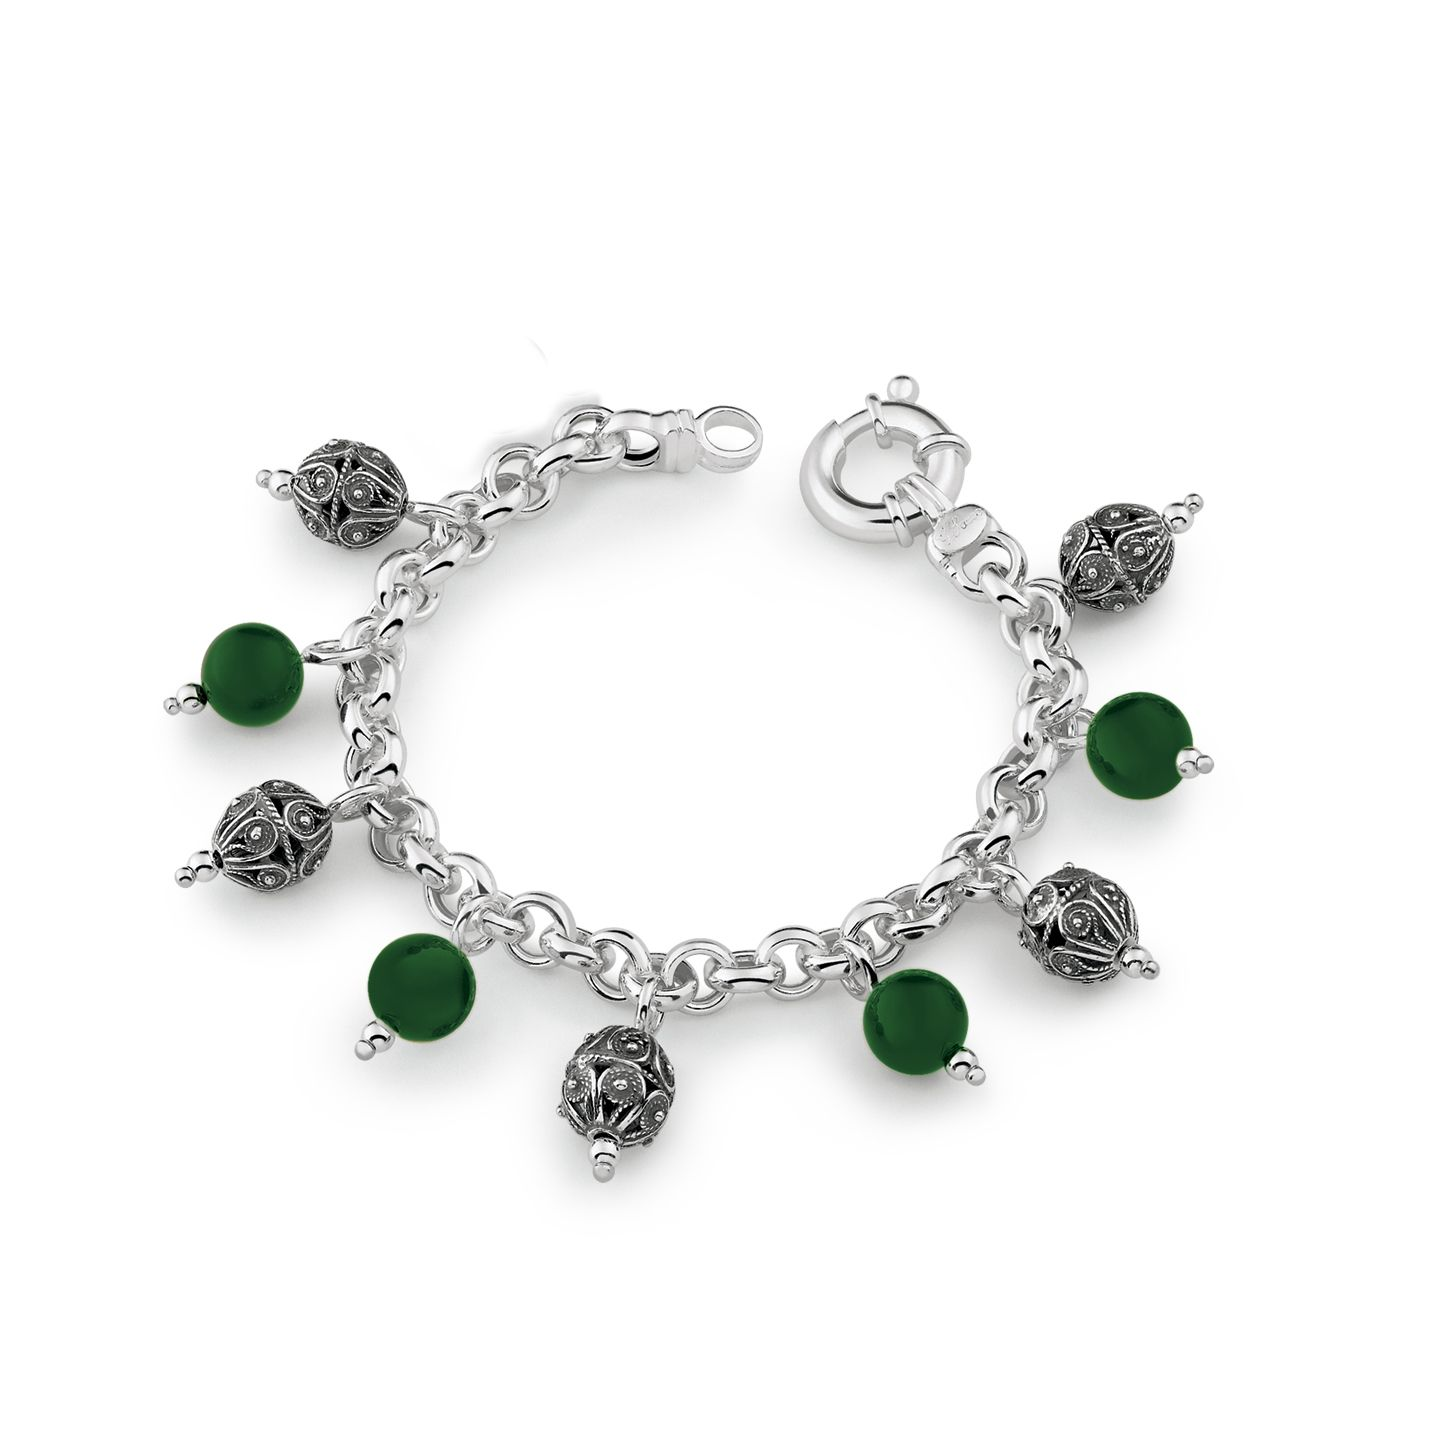 Silveer Bracelet with colored stones and sinacles (33133)